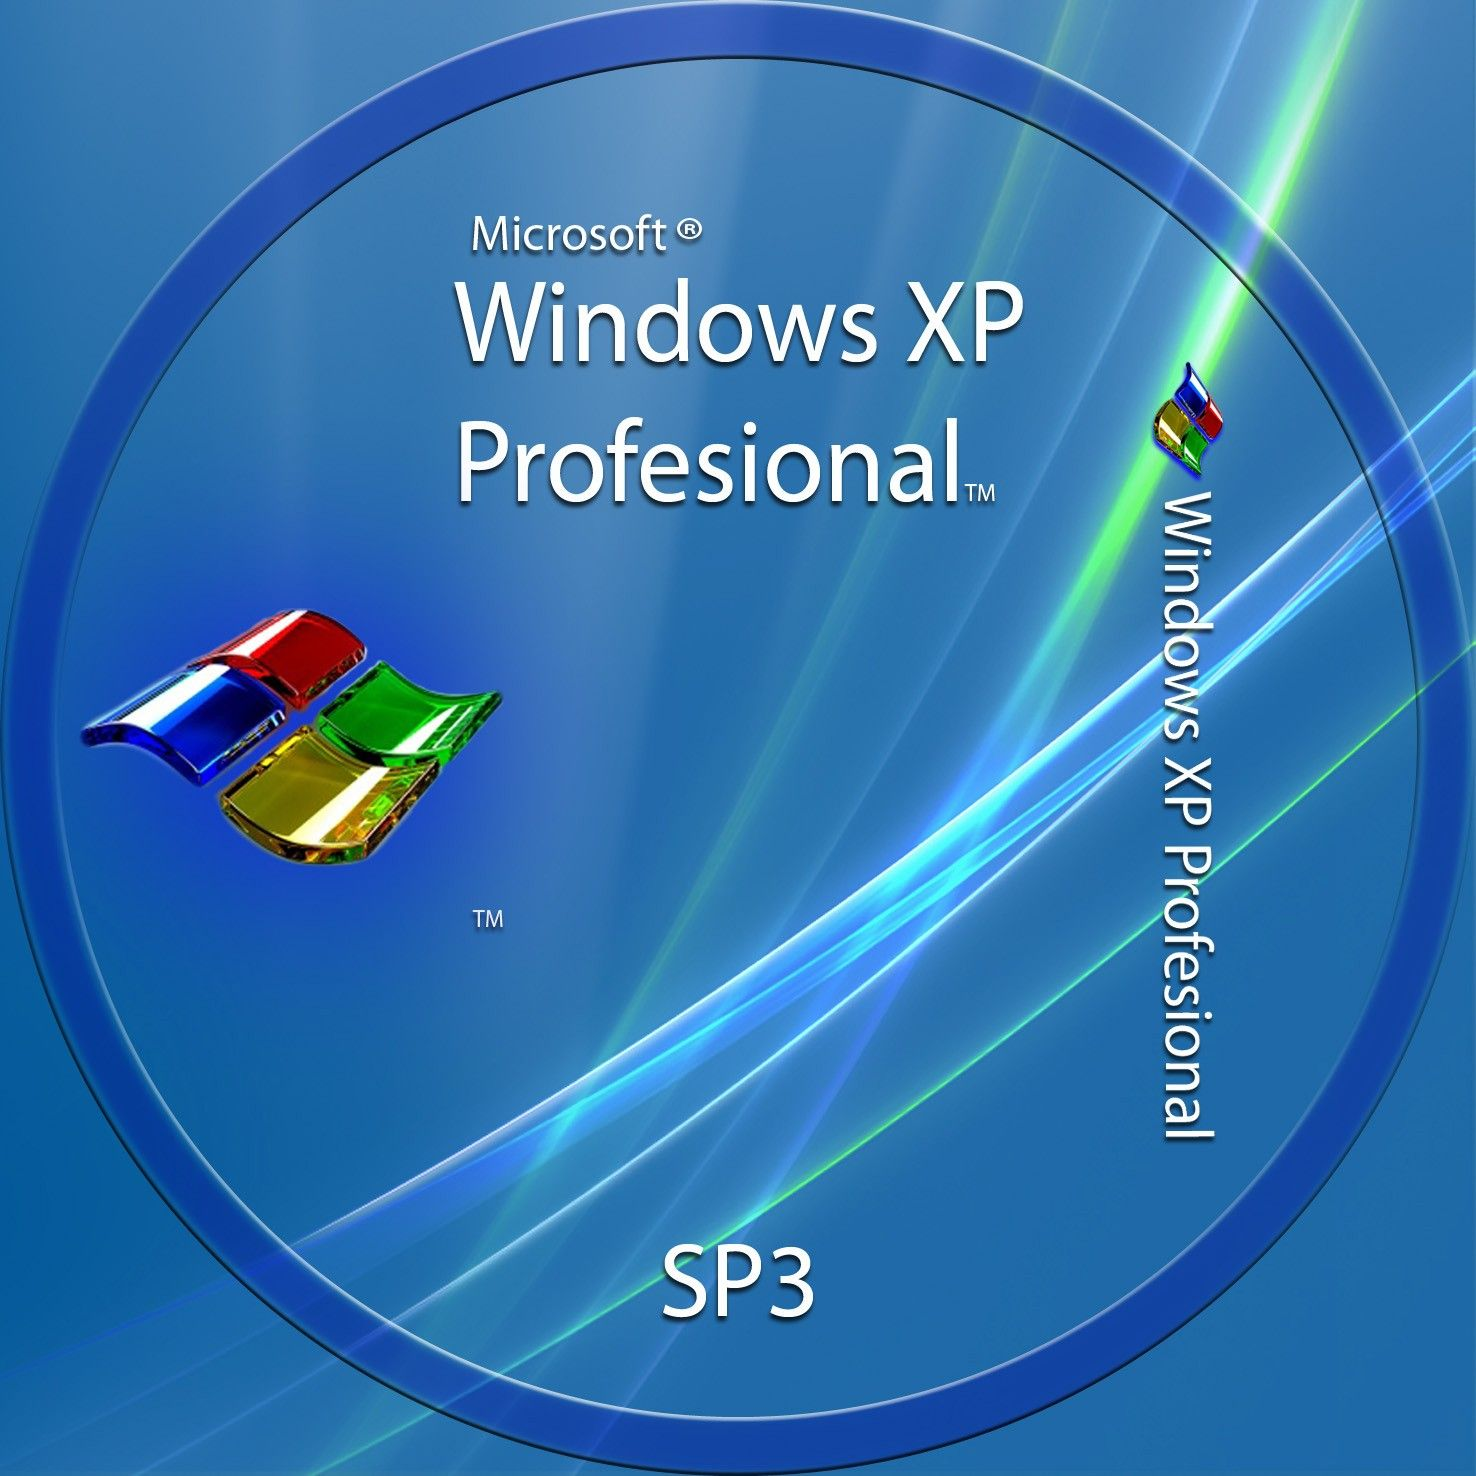 Windows xp professional sp3 dream software office